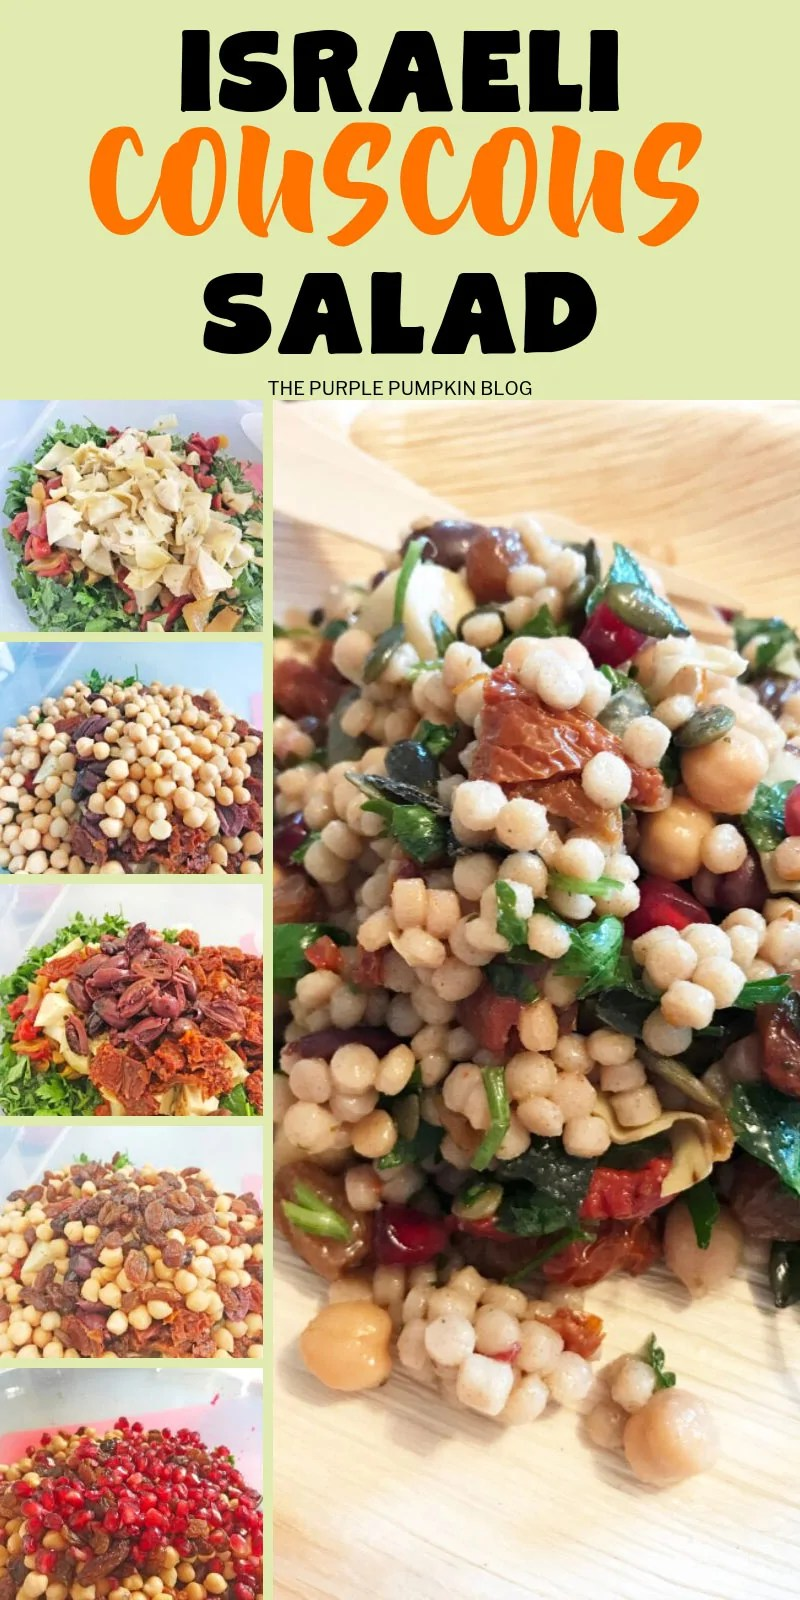 Israeli Couscous Salad - pictures showing recipe steps with artichoke hearts, chickpeas, olives, raisins, pomegranate seeds, and the finished dish.